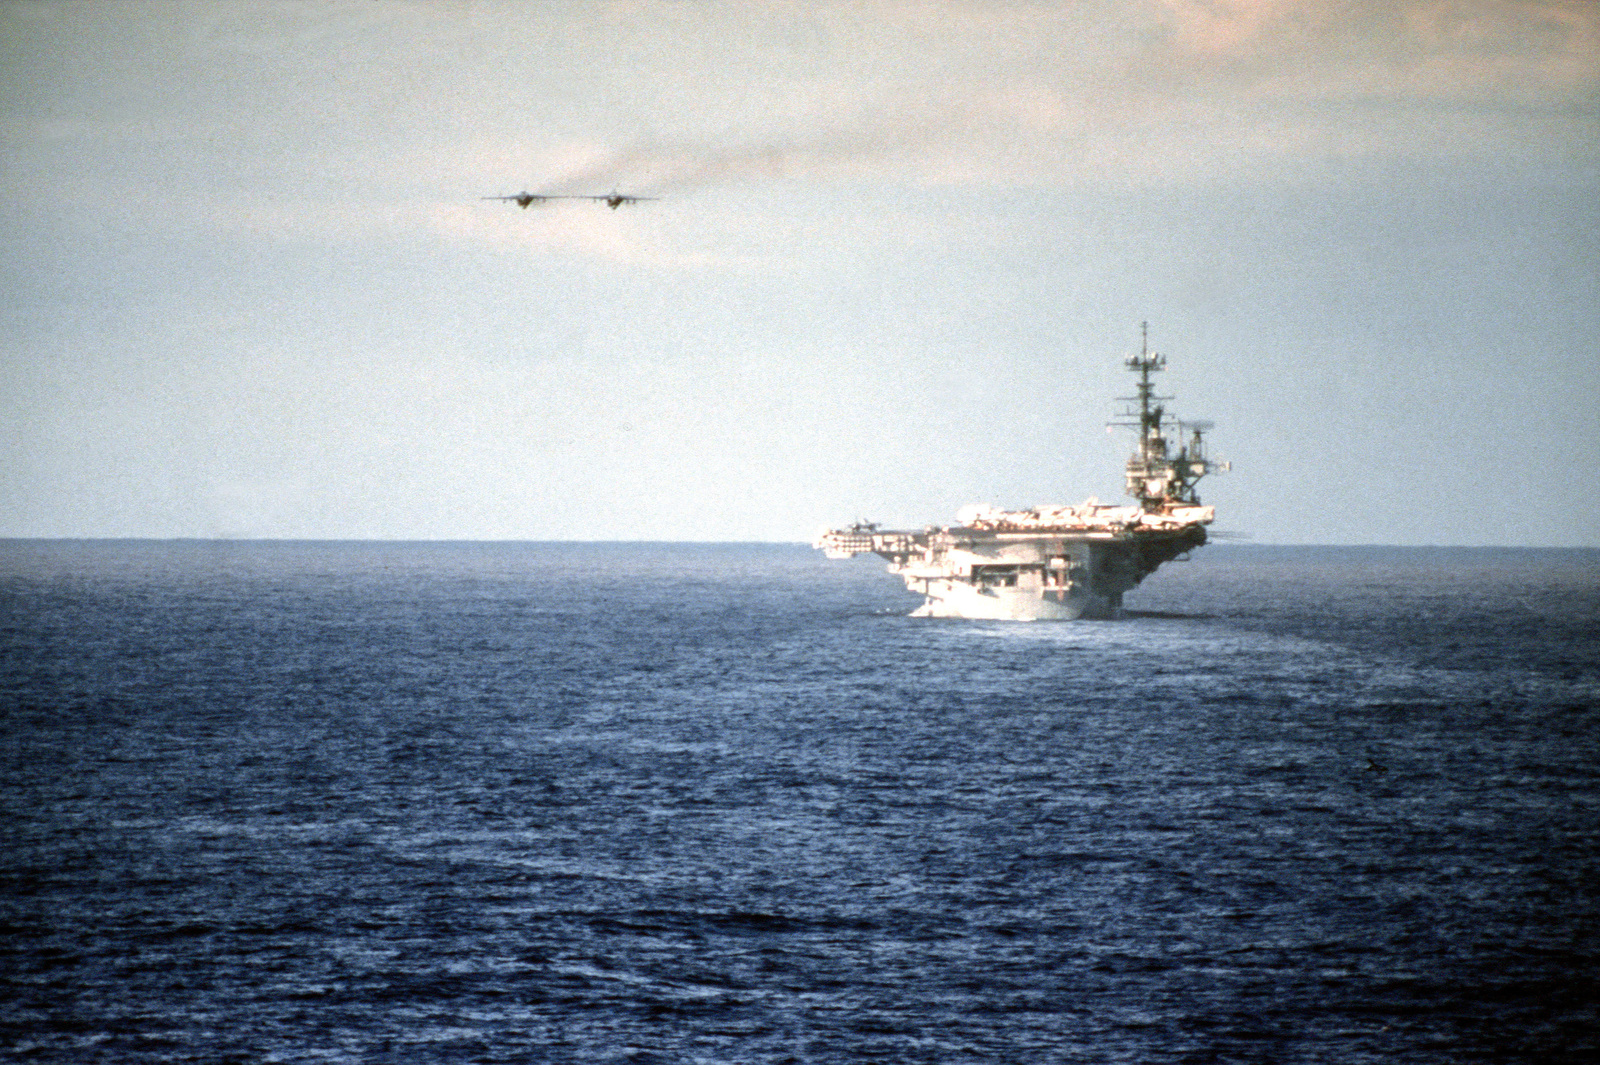 Two A-6E Intruder aircraft fly side by side past the aircraft carrier USS INDEPENDENCE (CV-62) during the multinational Exercise RimPac '90. The Pacific Rim nations of Australia, Canada, Japan, South Korea and the U.S. are participating in the annual naval and amphibious exercise